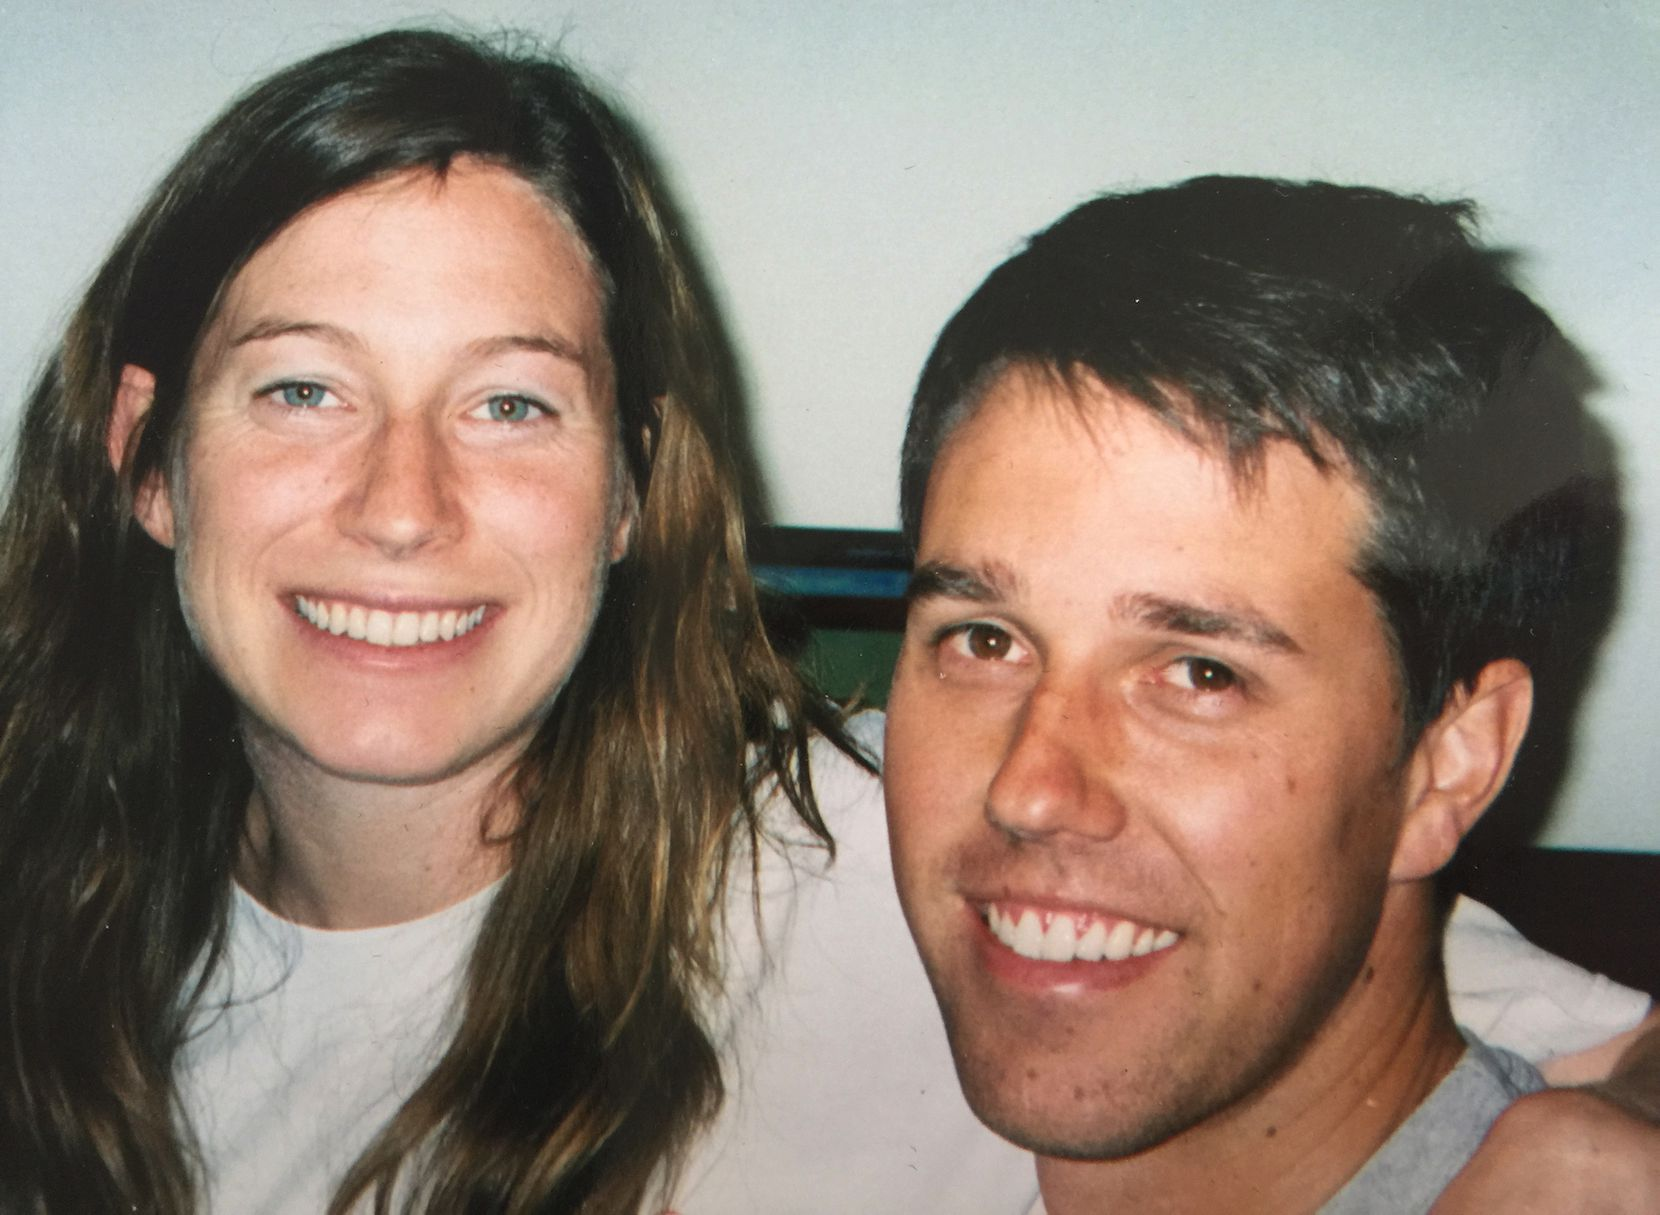 This undated family photo provided by Melissa O'Rourke, shows Amy and Beto O'Rourke. (Melissa O'Rourke via AP)